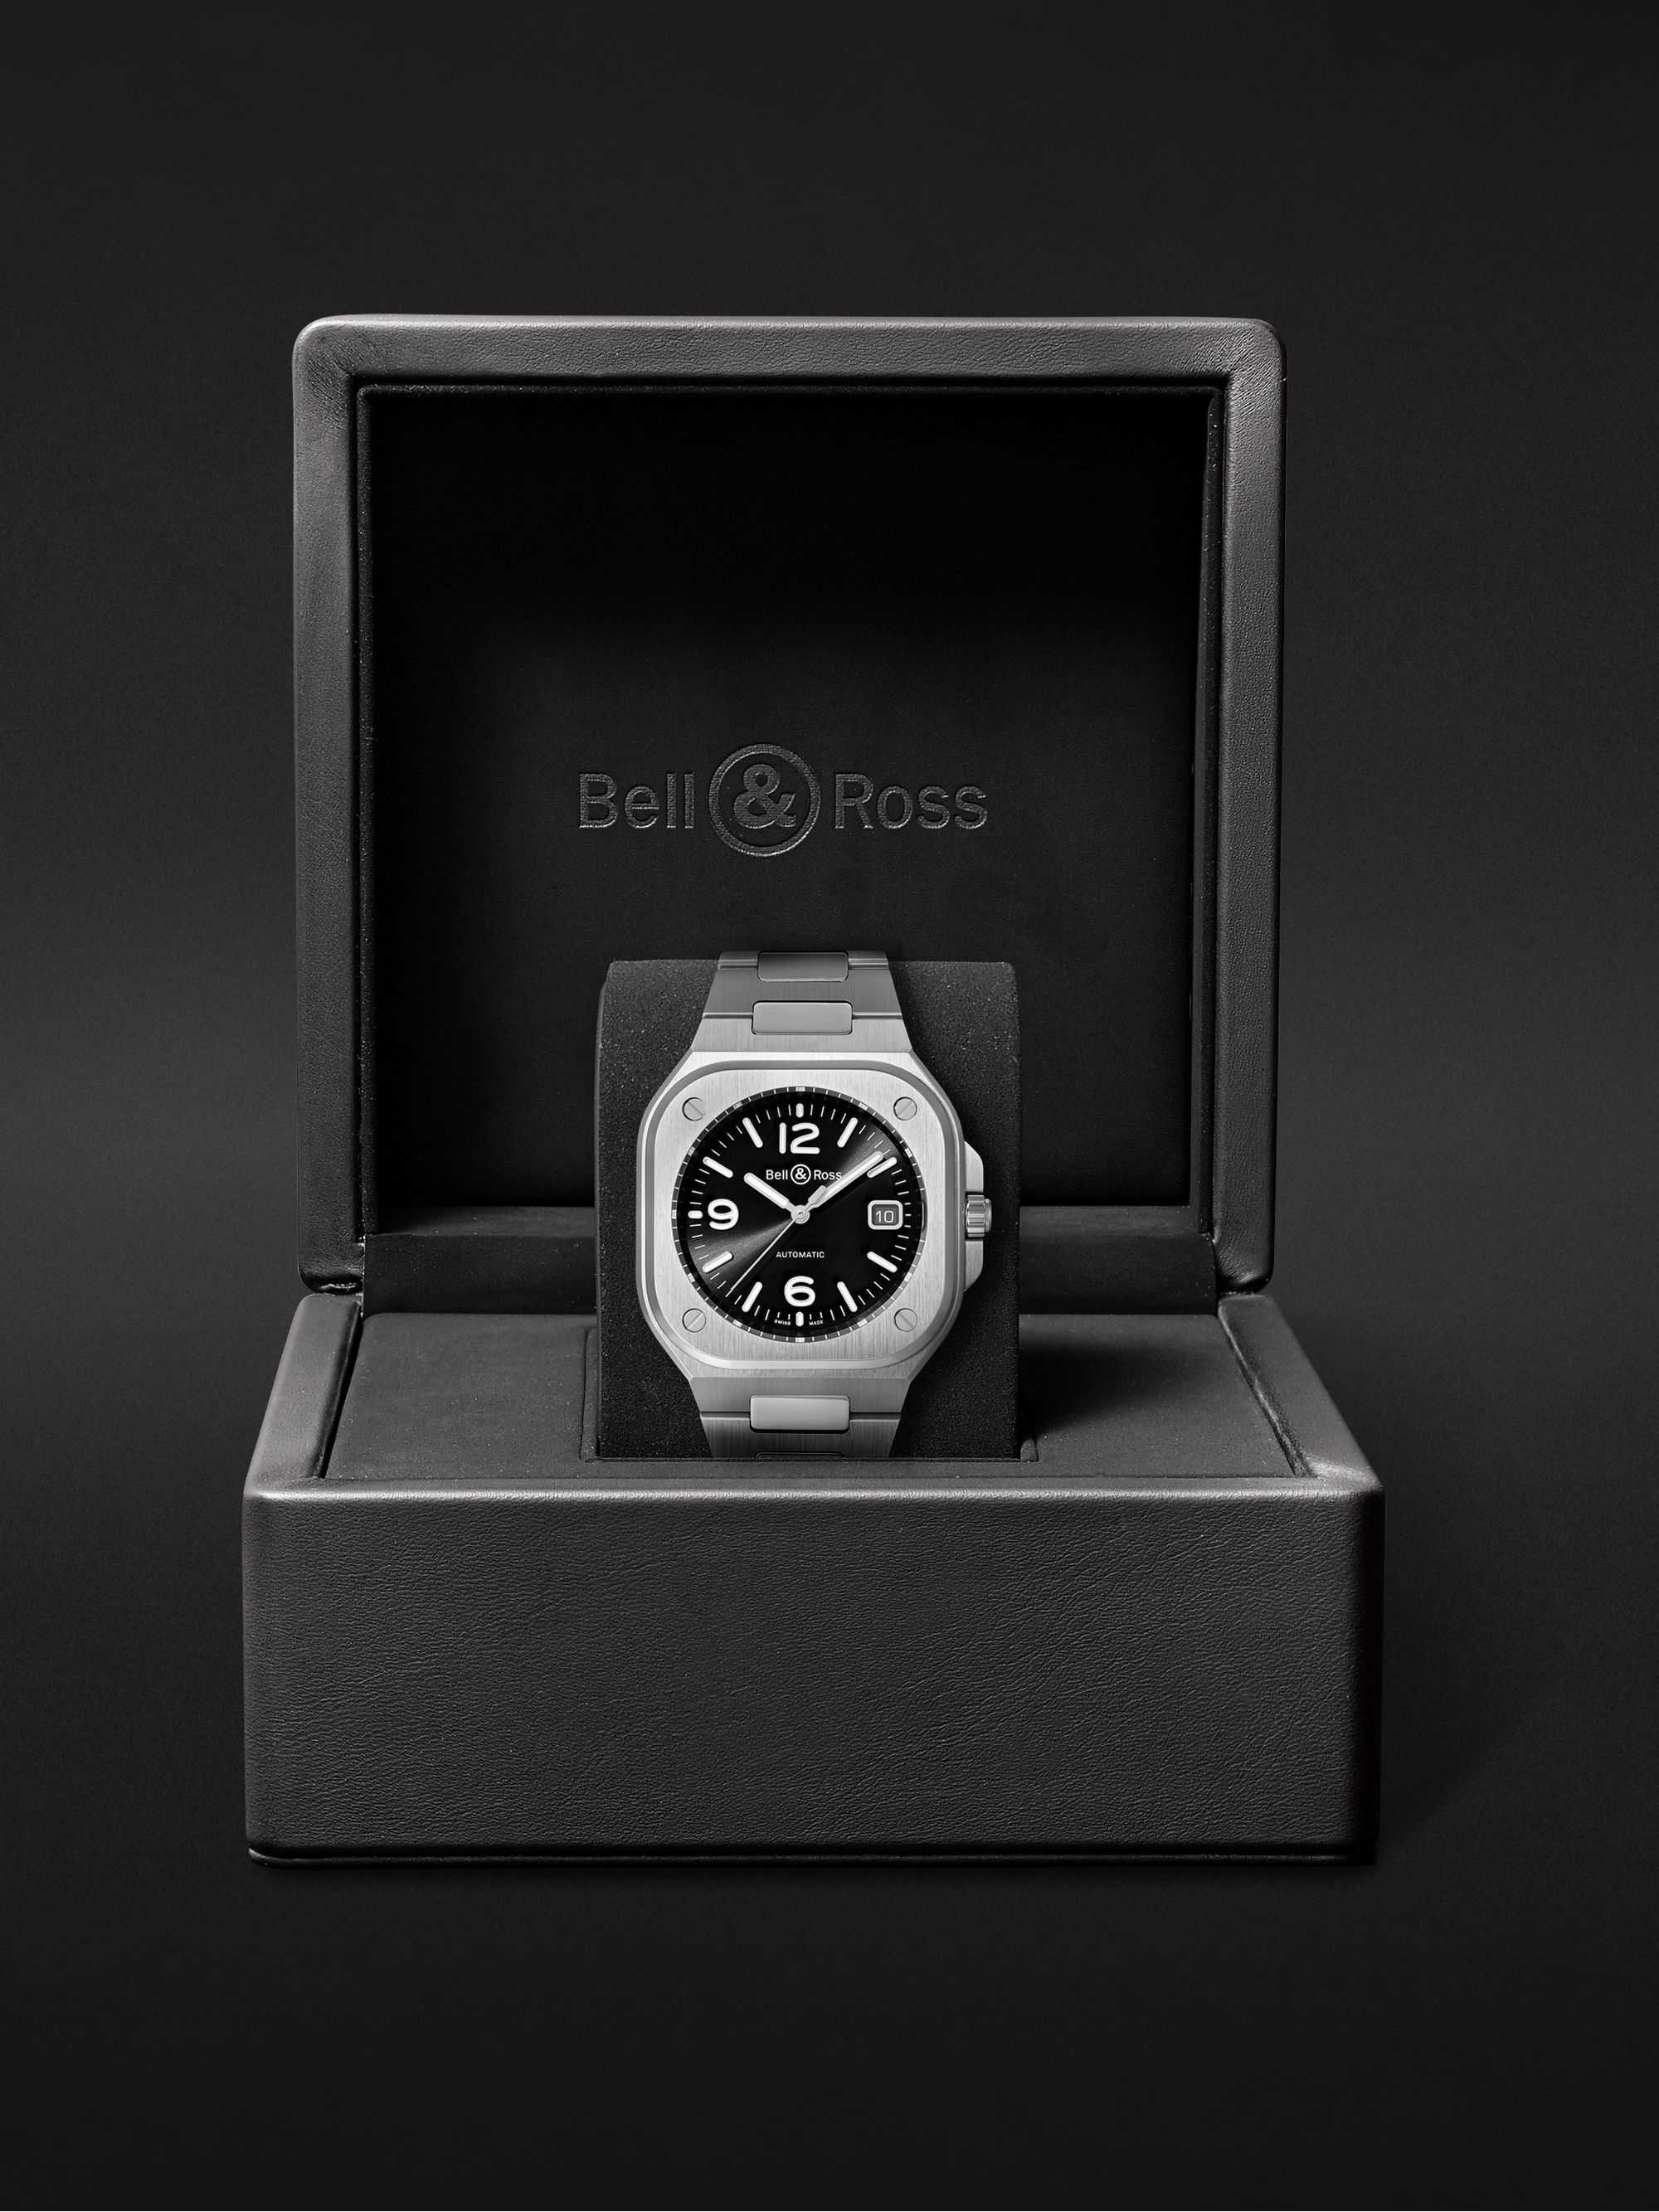 Bell & Ross BR 05 Automatic 40mm Steel Watch, Ref. No. BR05A-BL-ST/SST